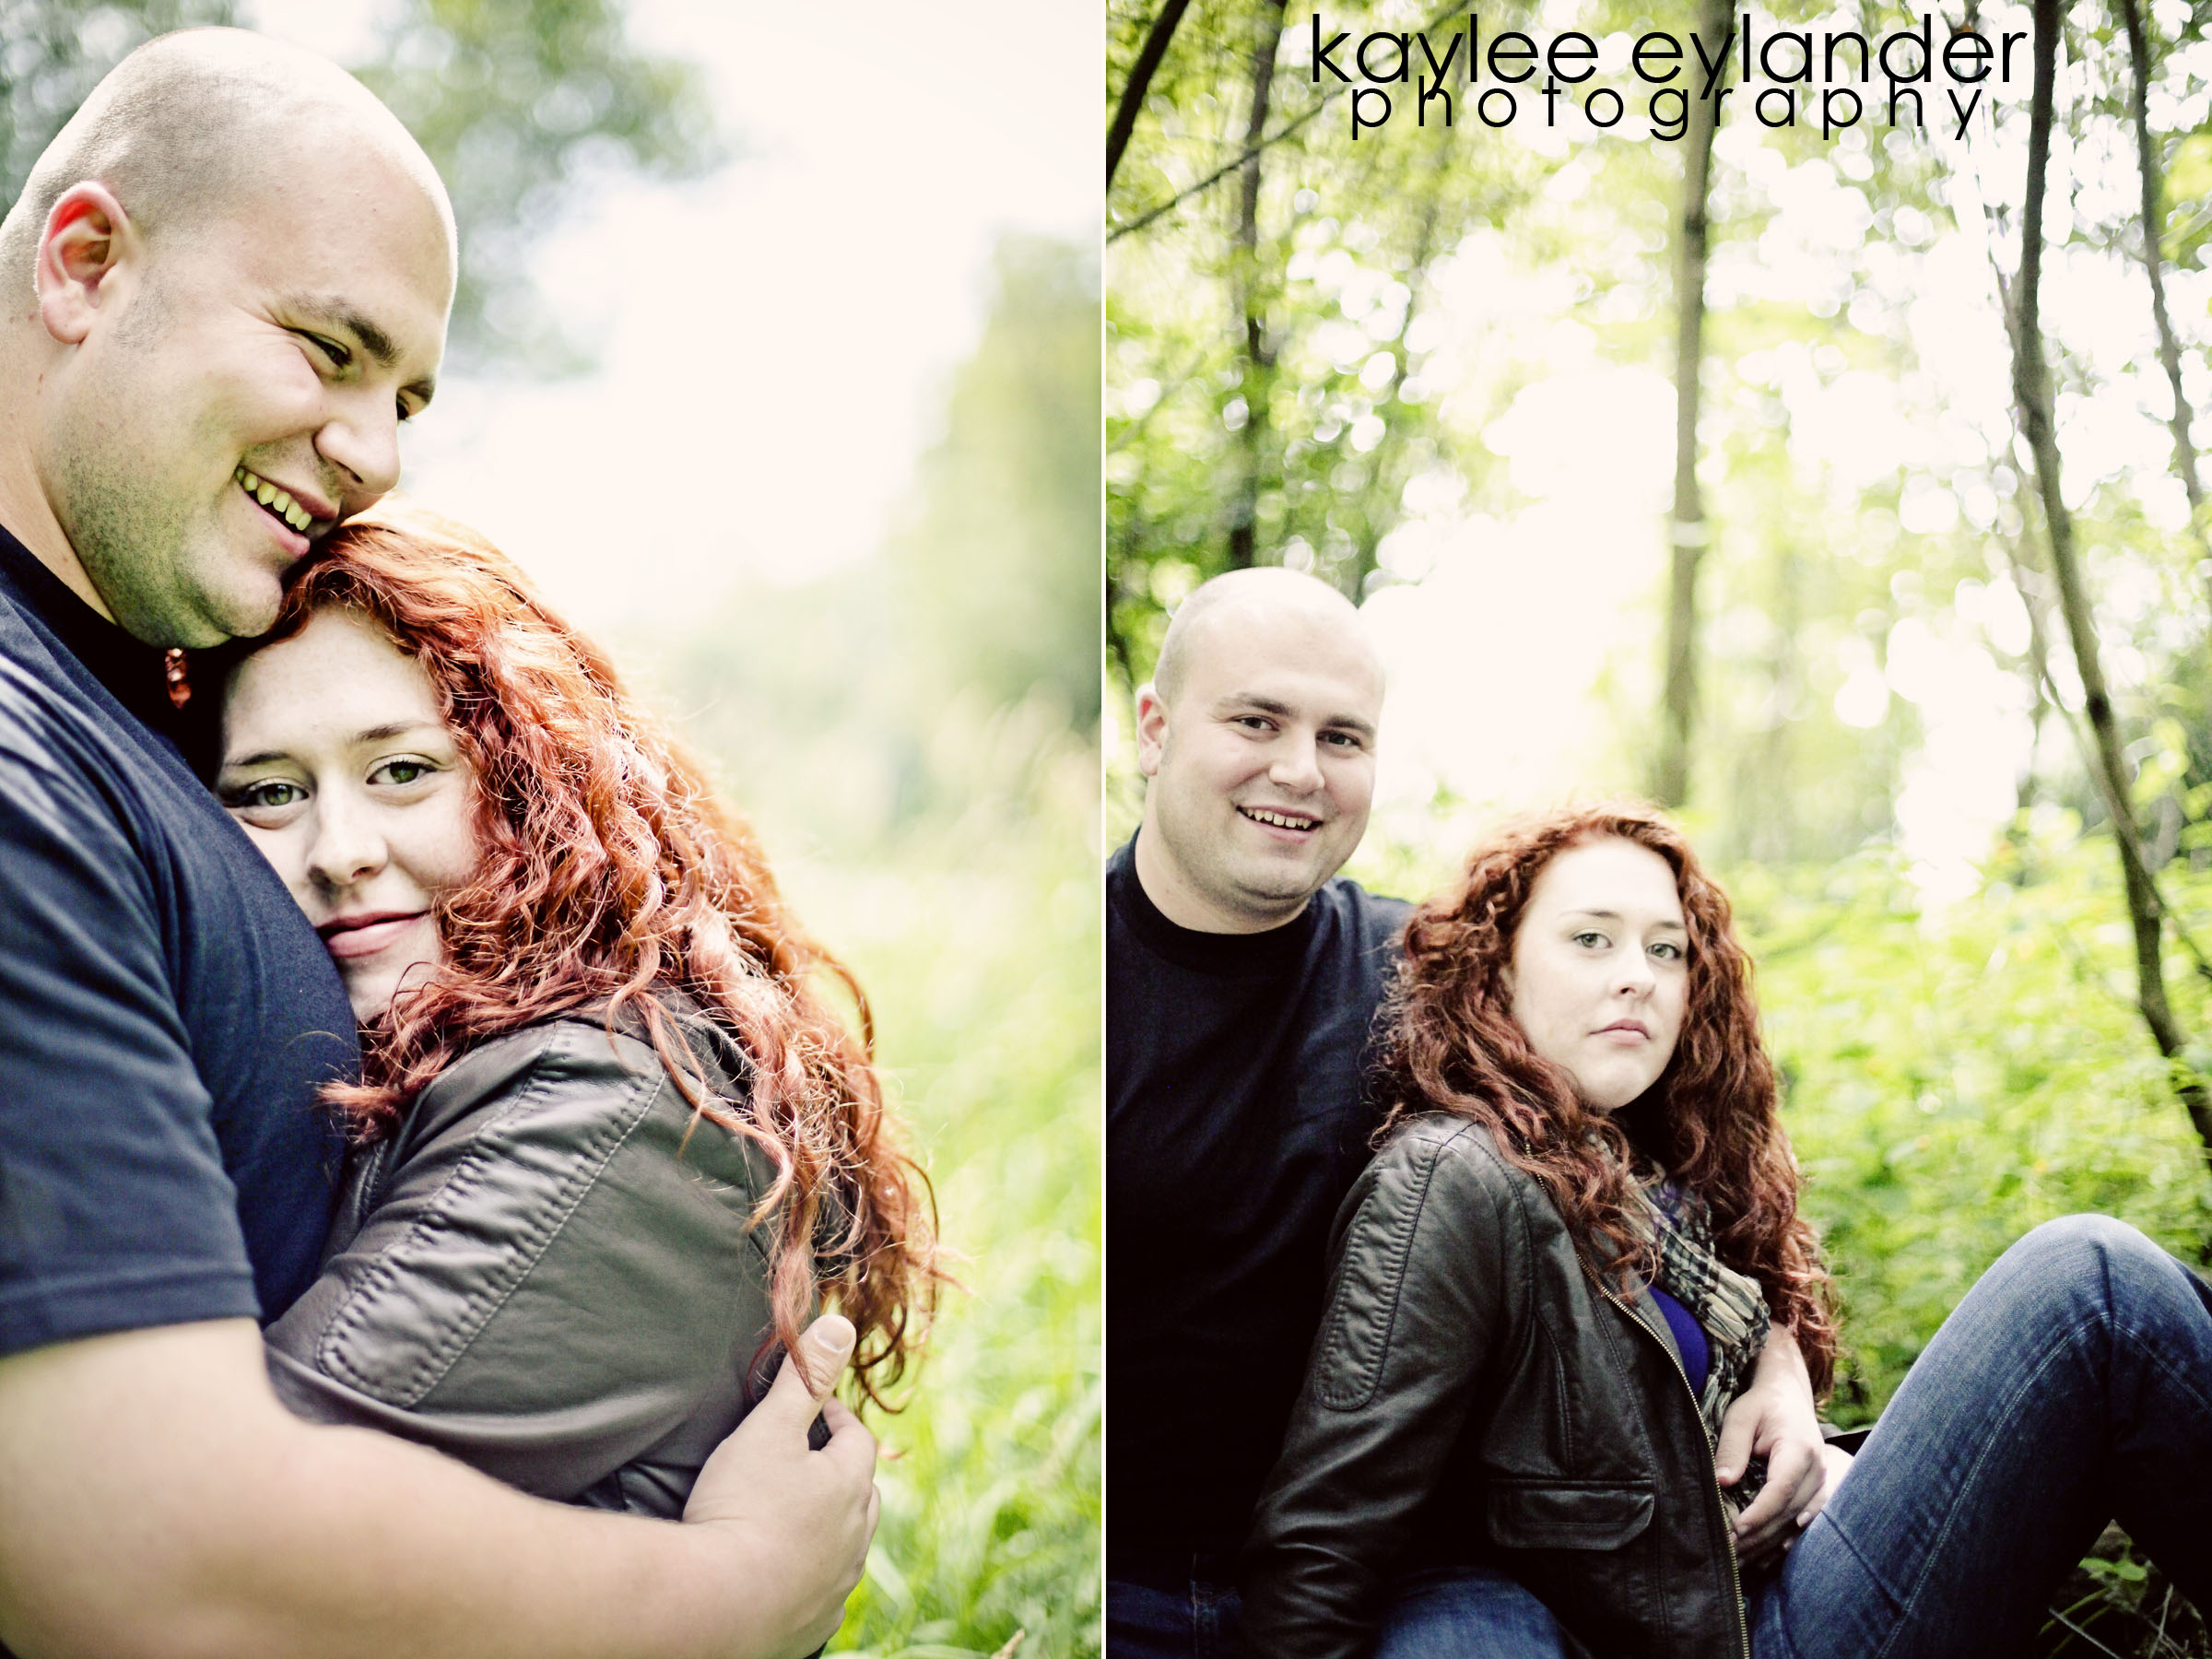 Meghann Rick 10 In The Trees| Engagement Session in the Forest | Eylander